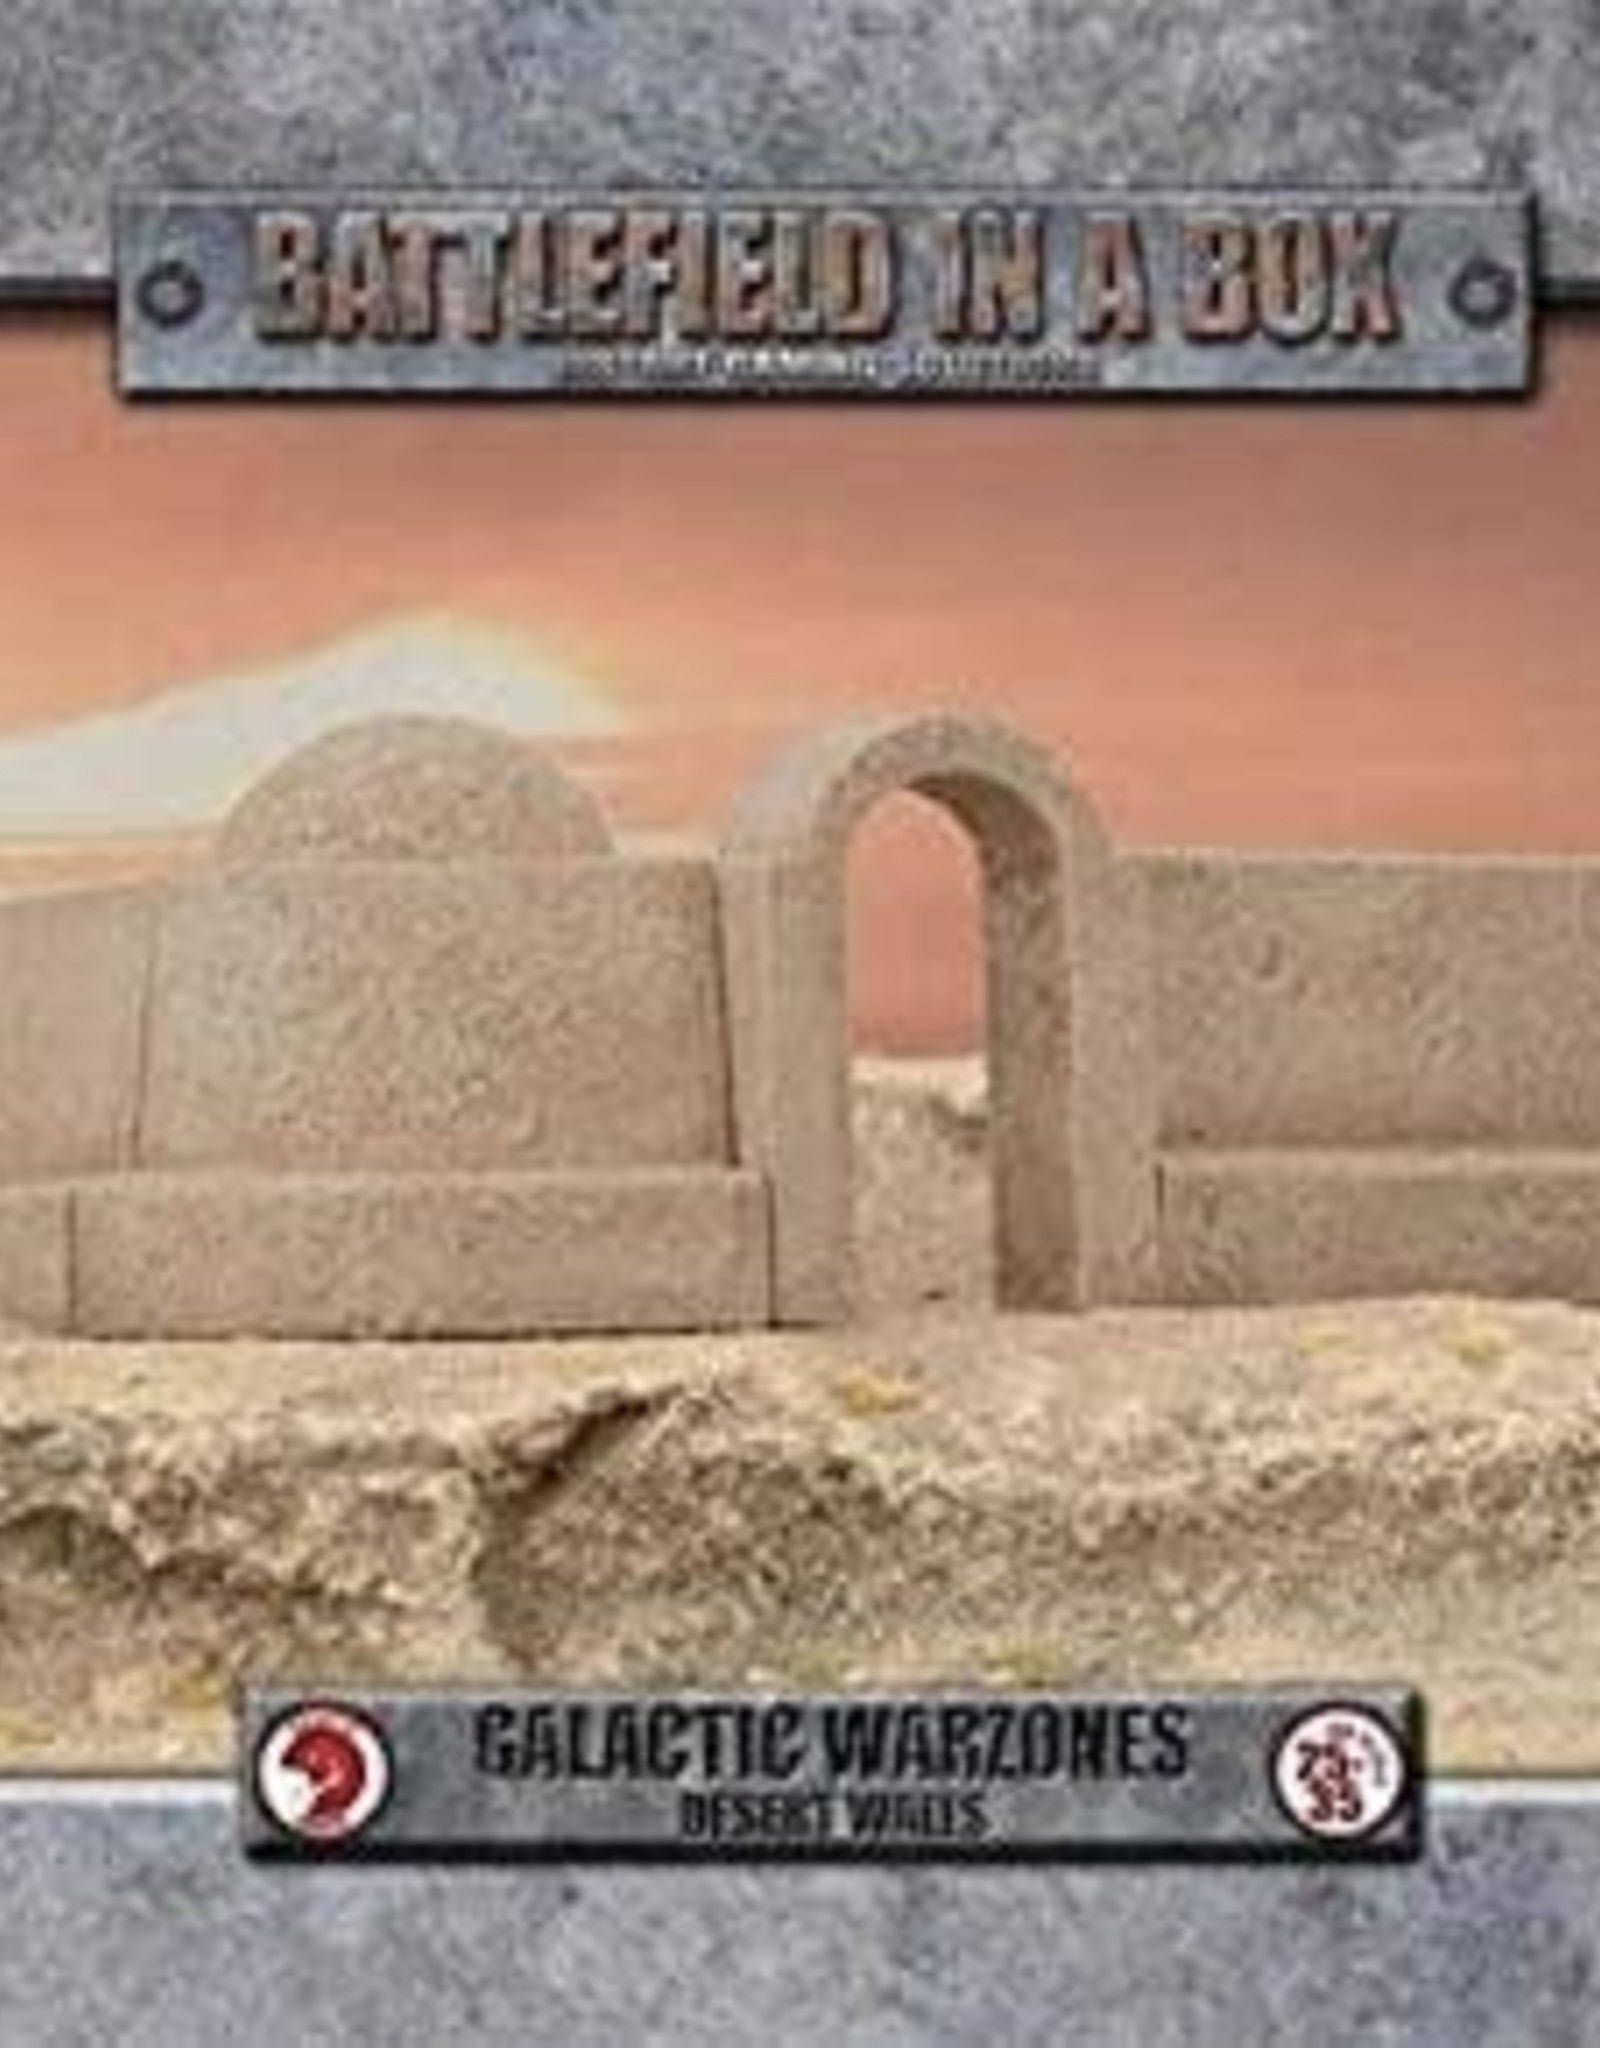 Gale Force 9 Battlefield in a Box Galactic Warzones Desert Walls